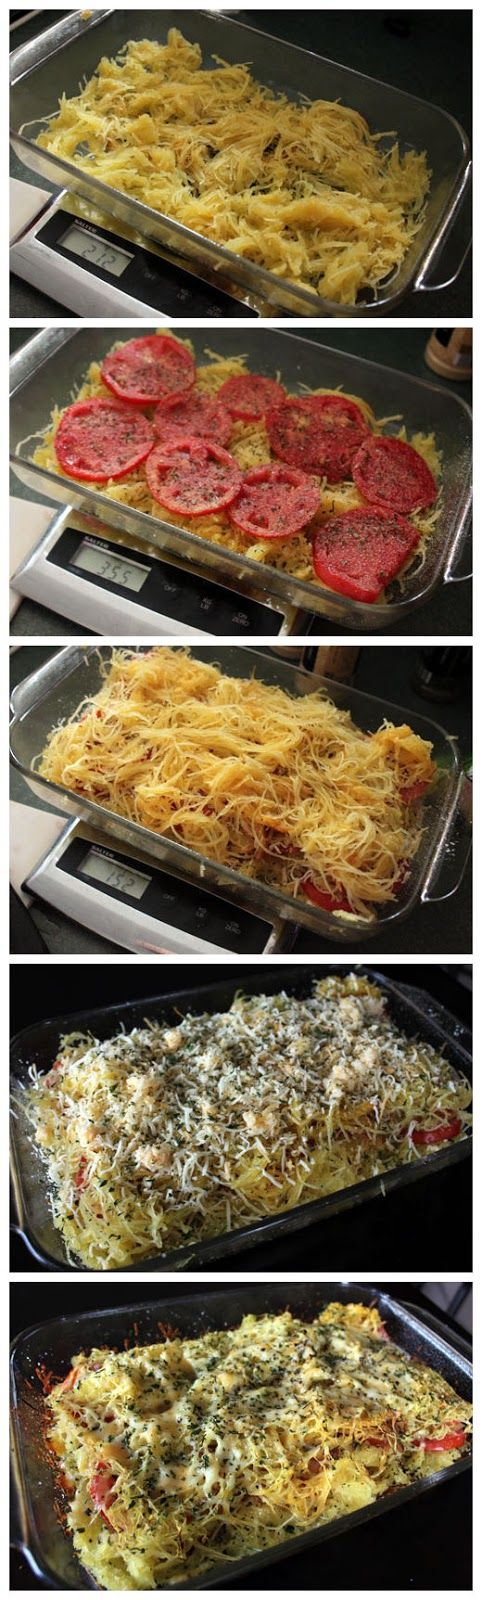 Spaghetti Squash and Tomato Bake. need to try this fall!